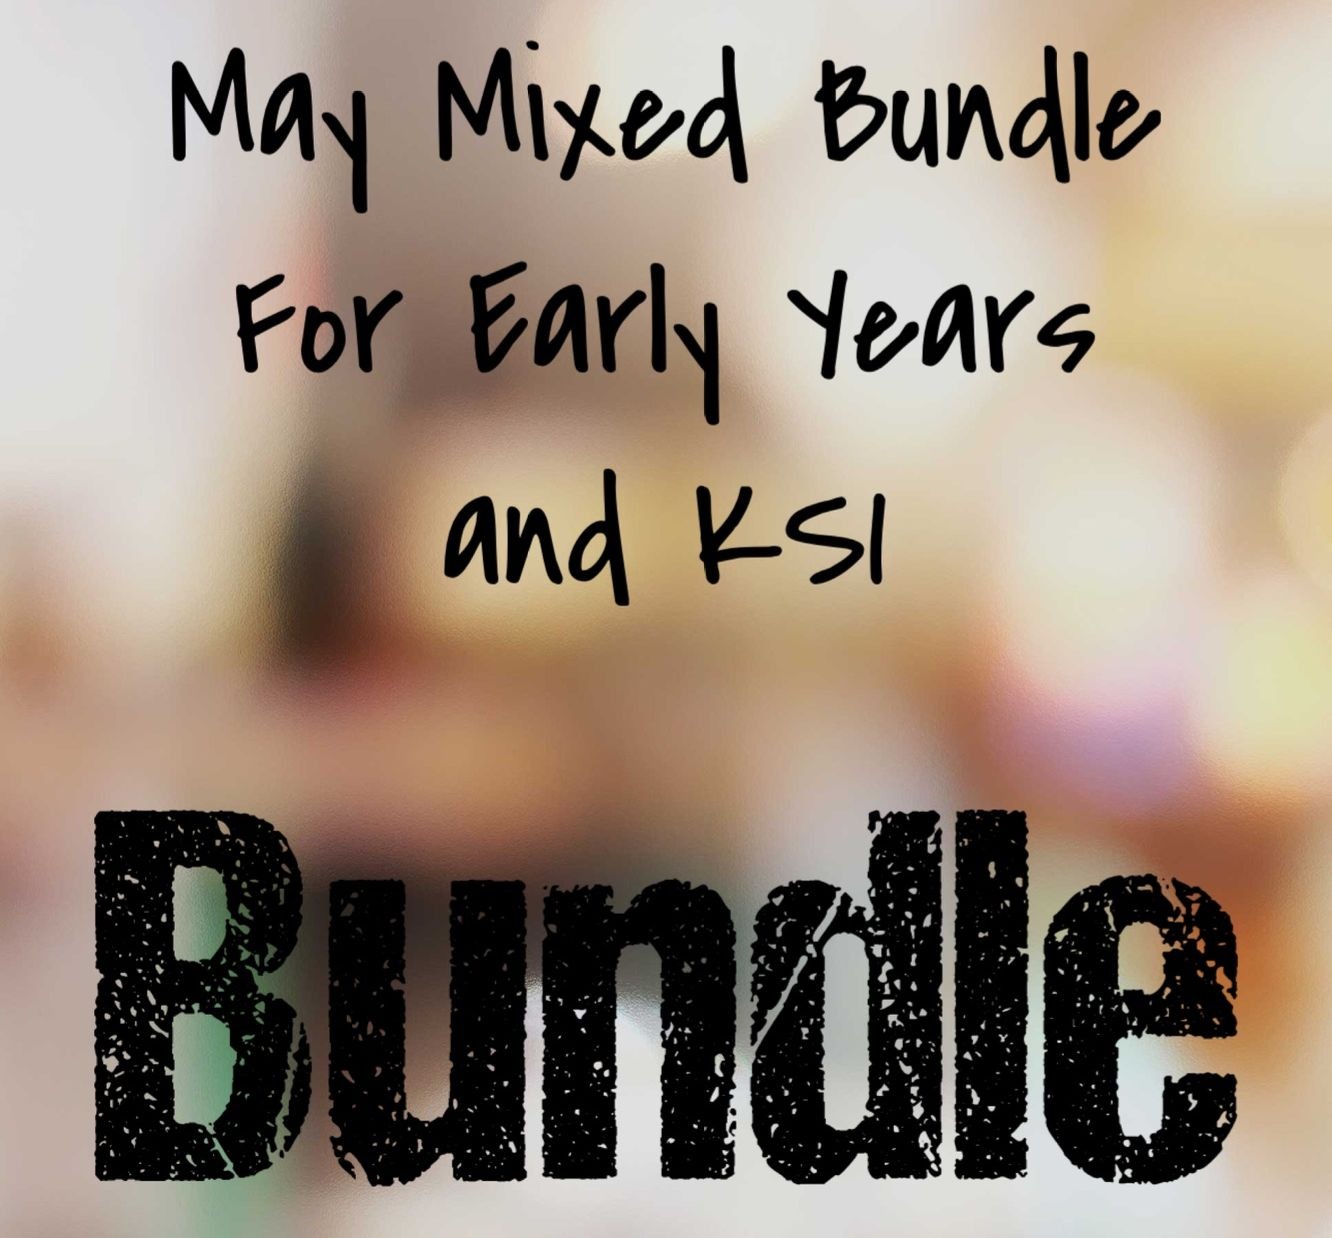 May Mixed Bundle for Early Years and KS1